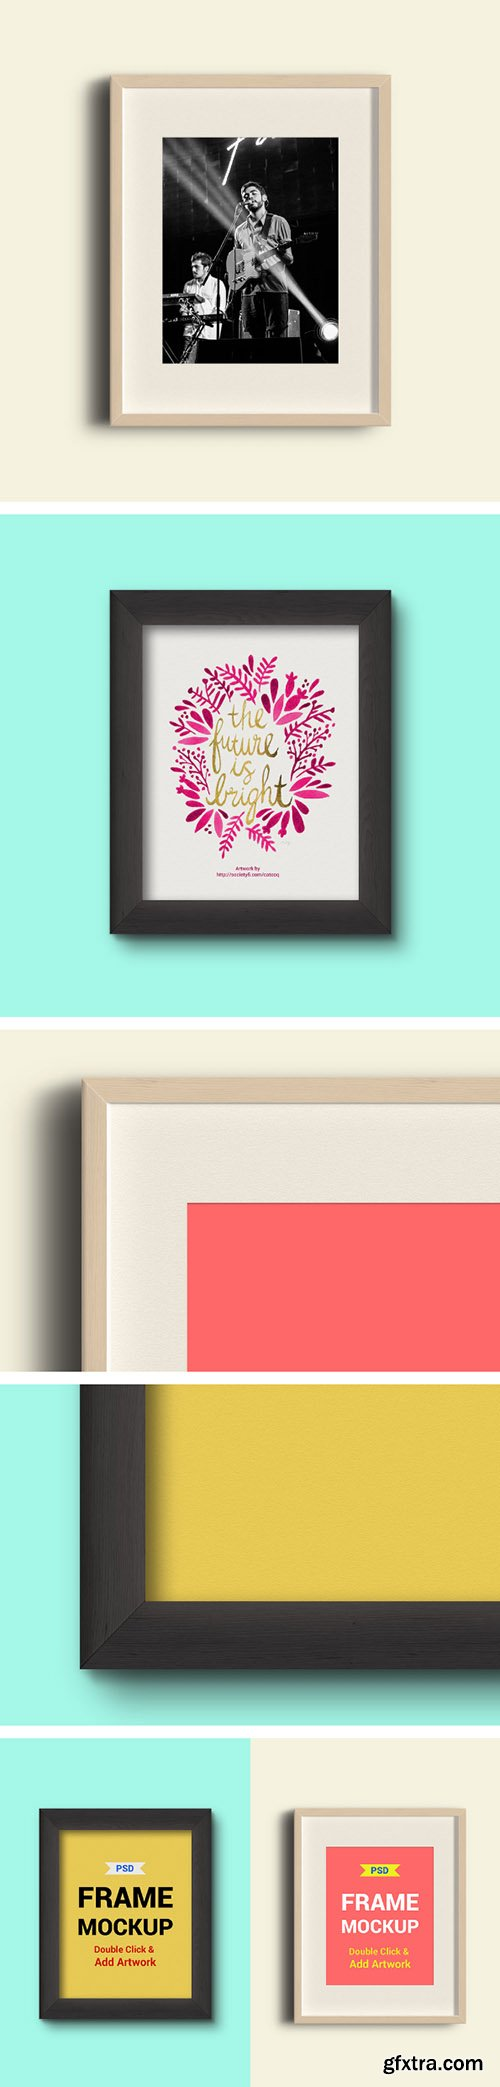 PSD Mock-Up's - Two Photo Frames